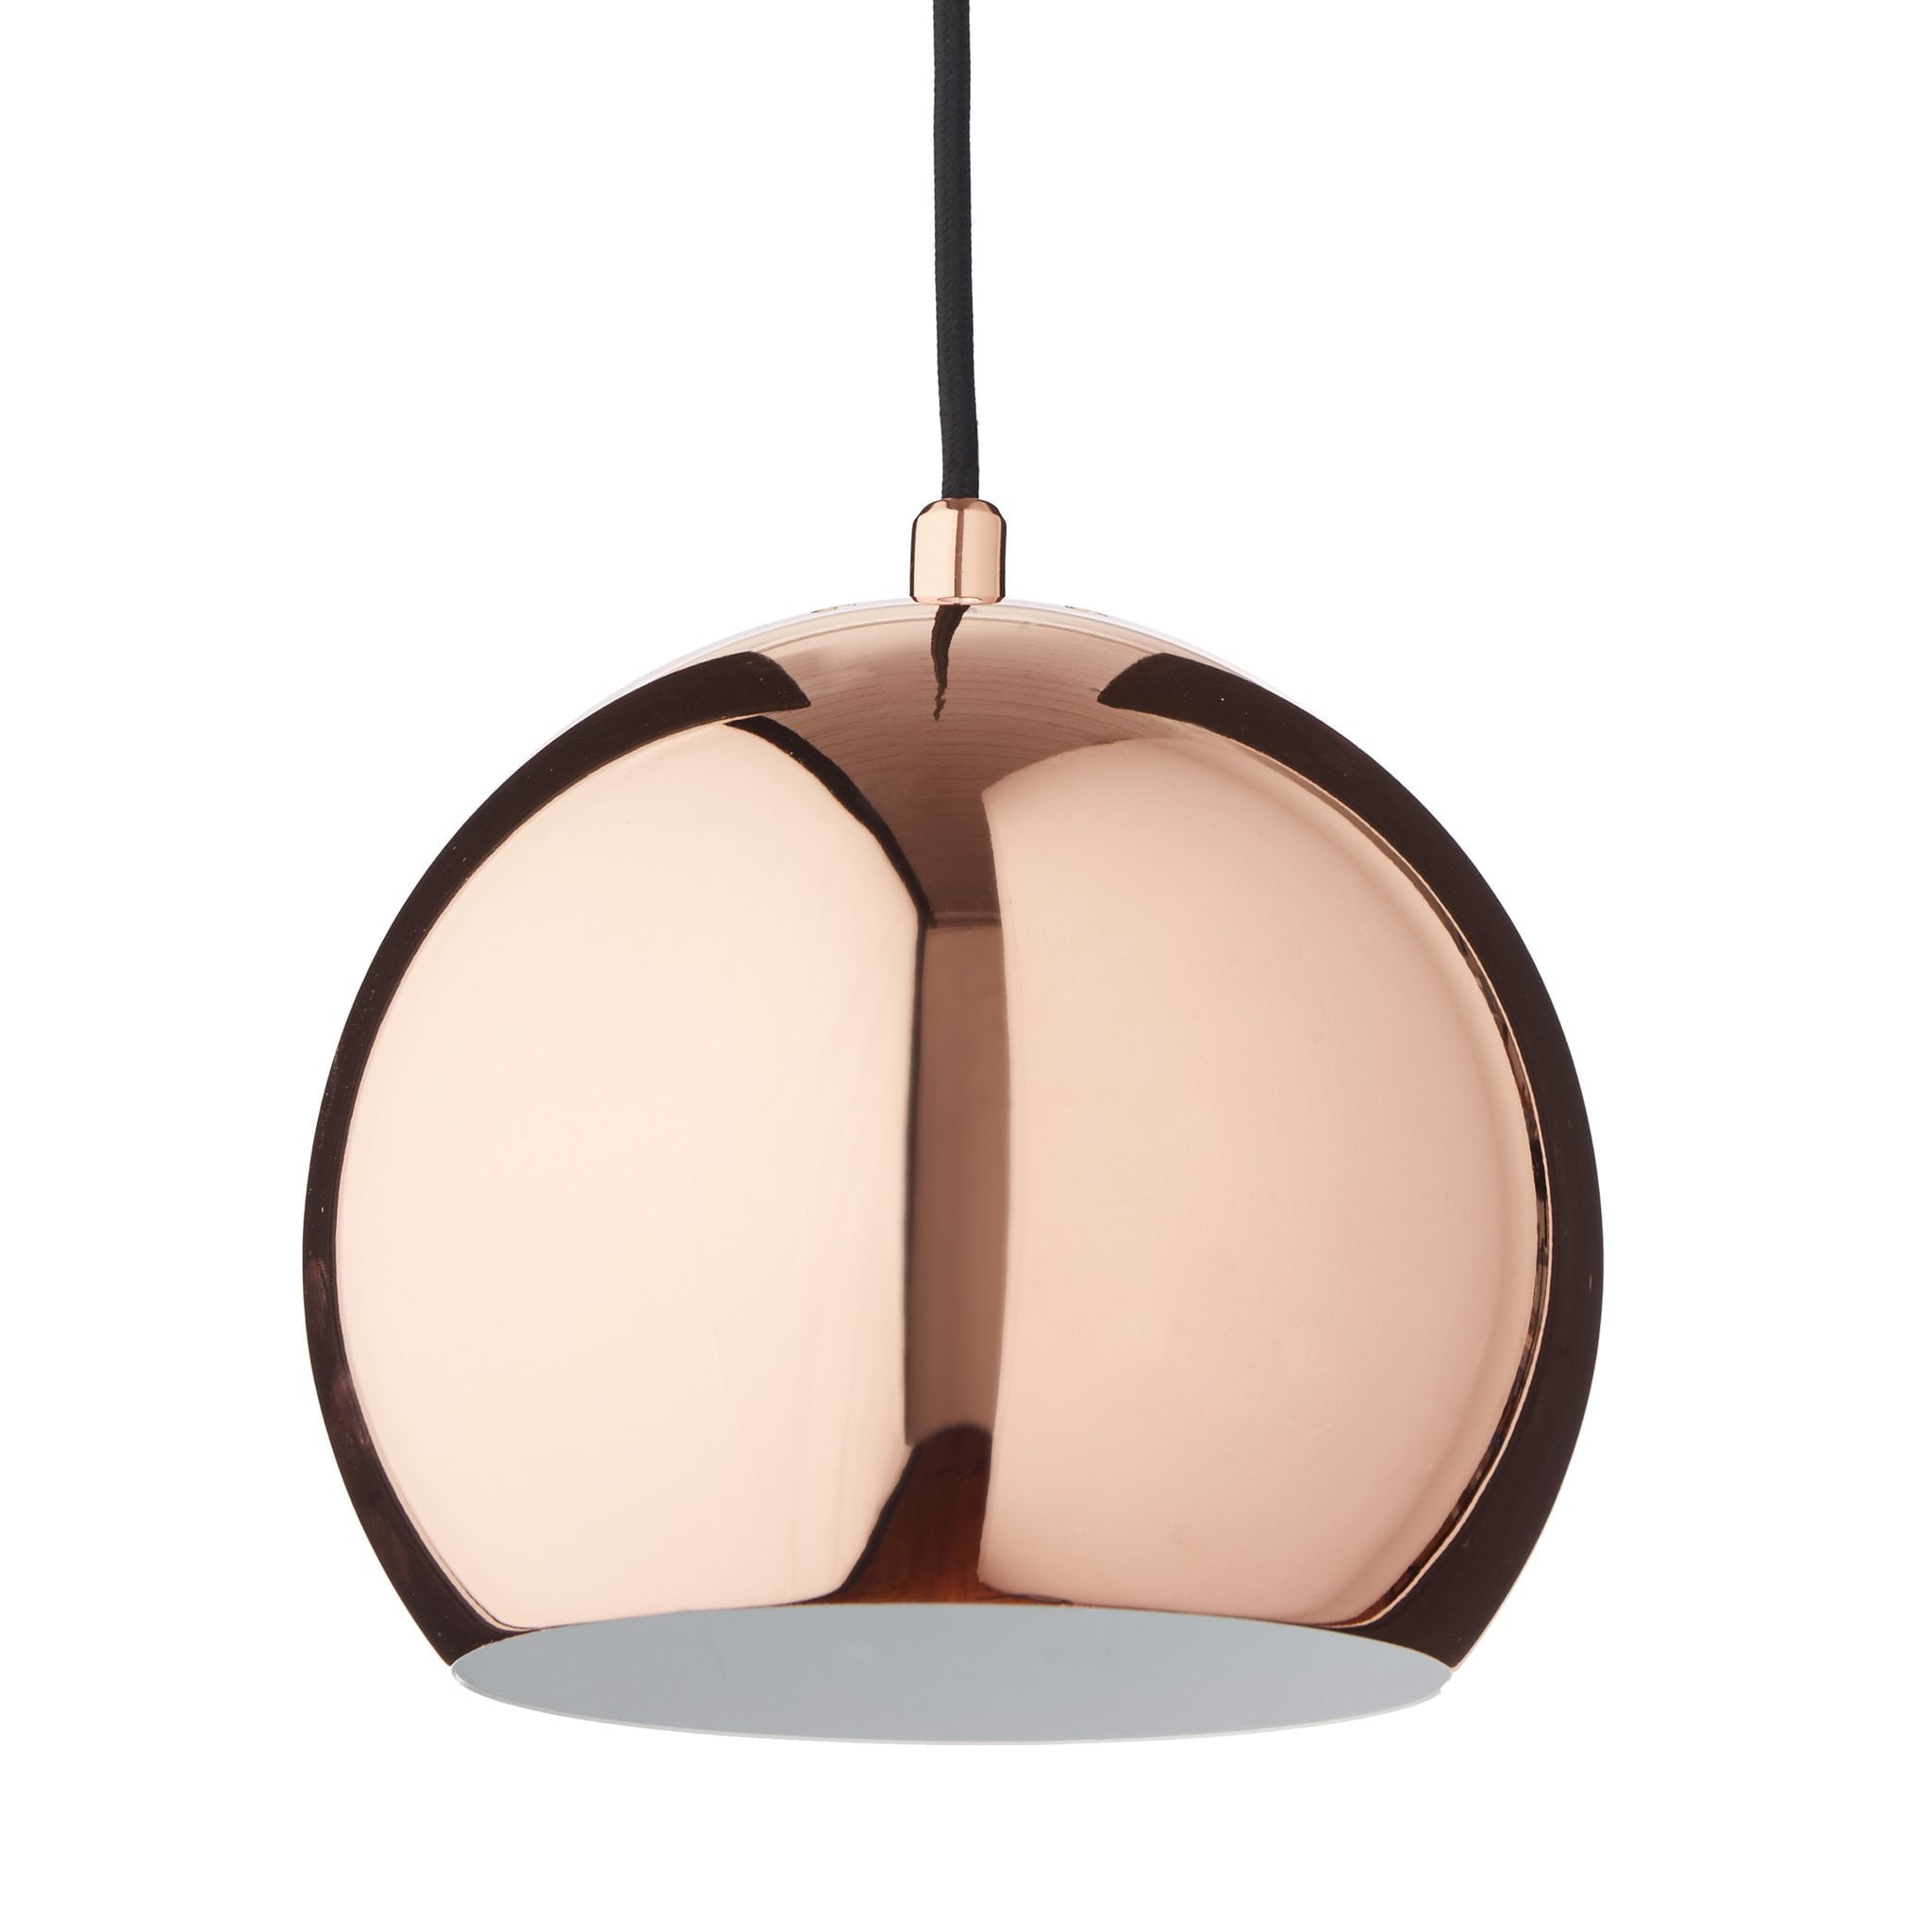 Koge Ball Pendant Lamp copper & black, 100% stainless steel